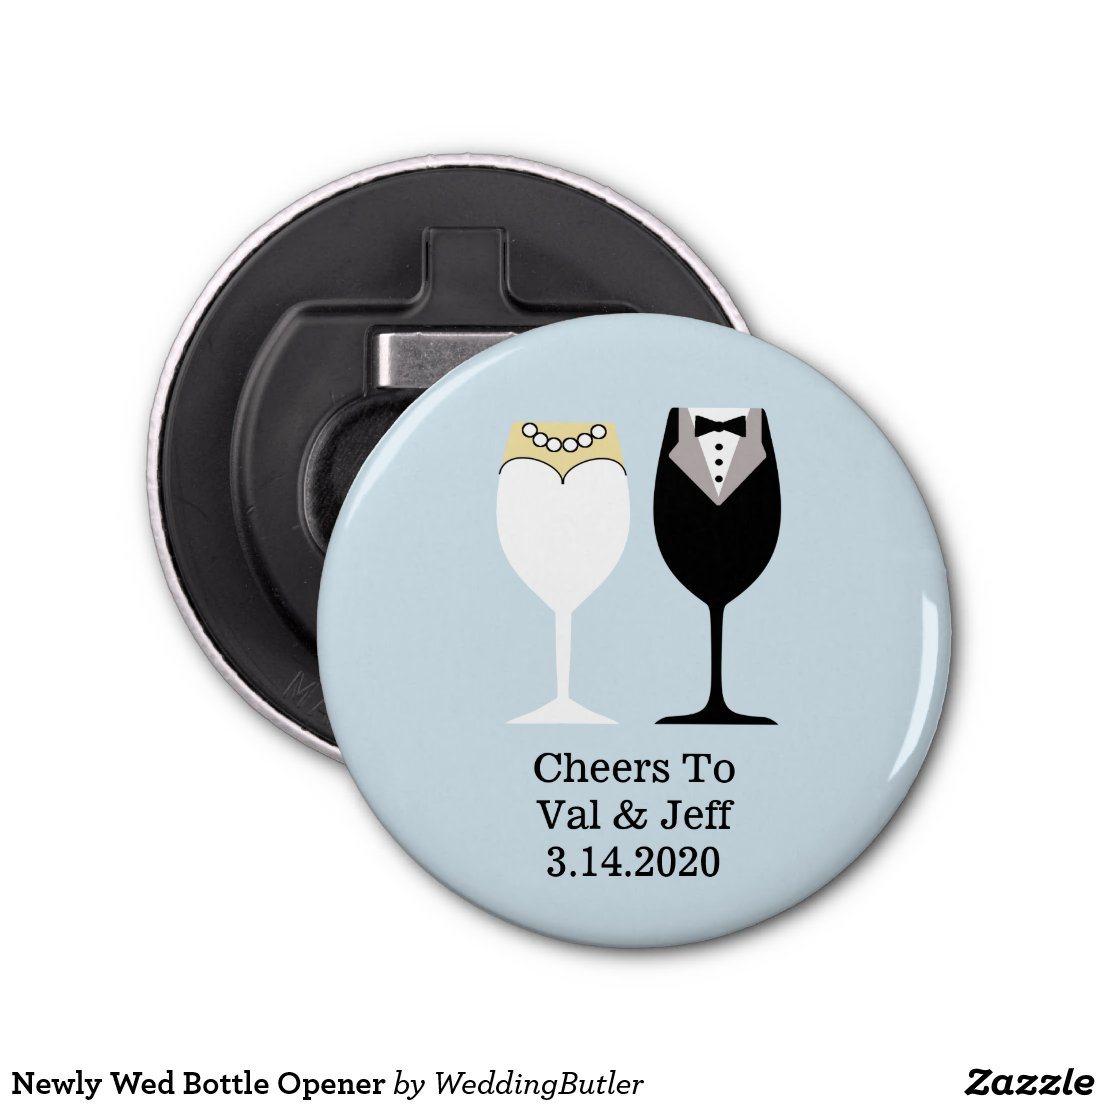 Newly Wed Bottle Opener